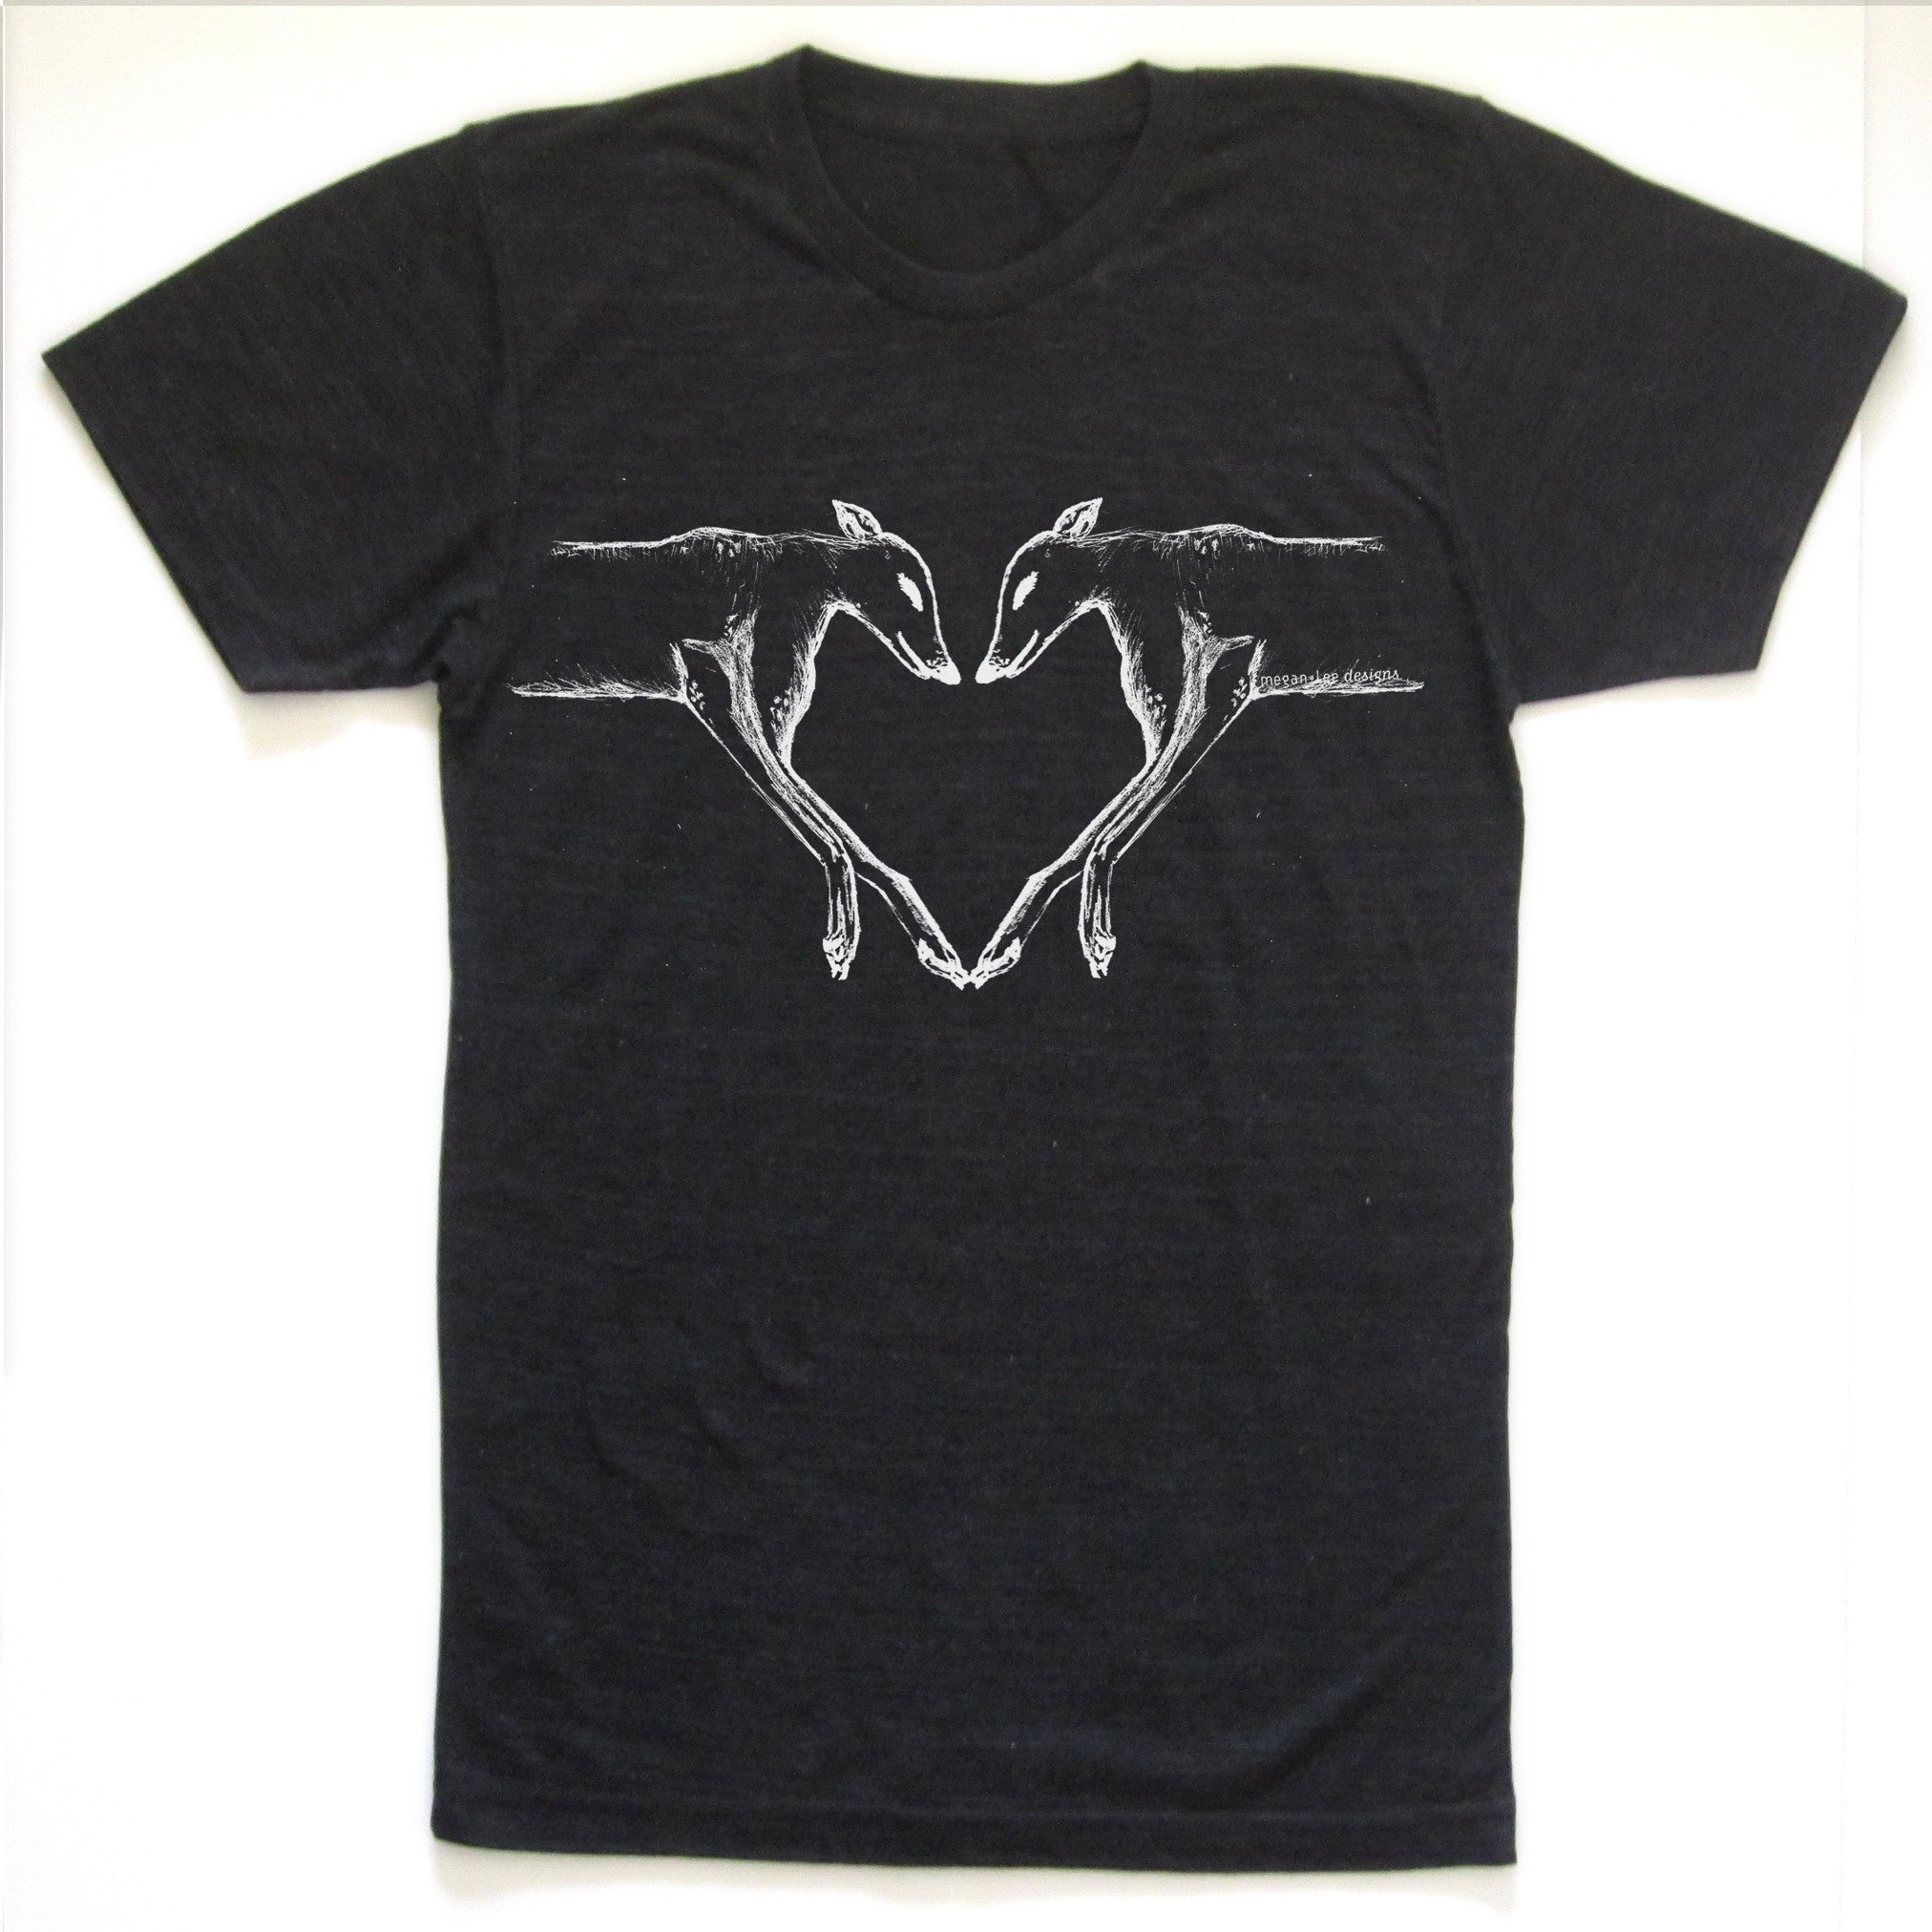 Greyhounds : unisex tri-blend tee, Unisex Apparel - Megan Lee Designs